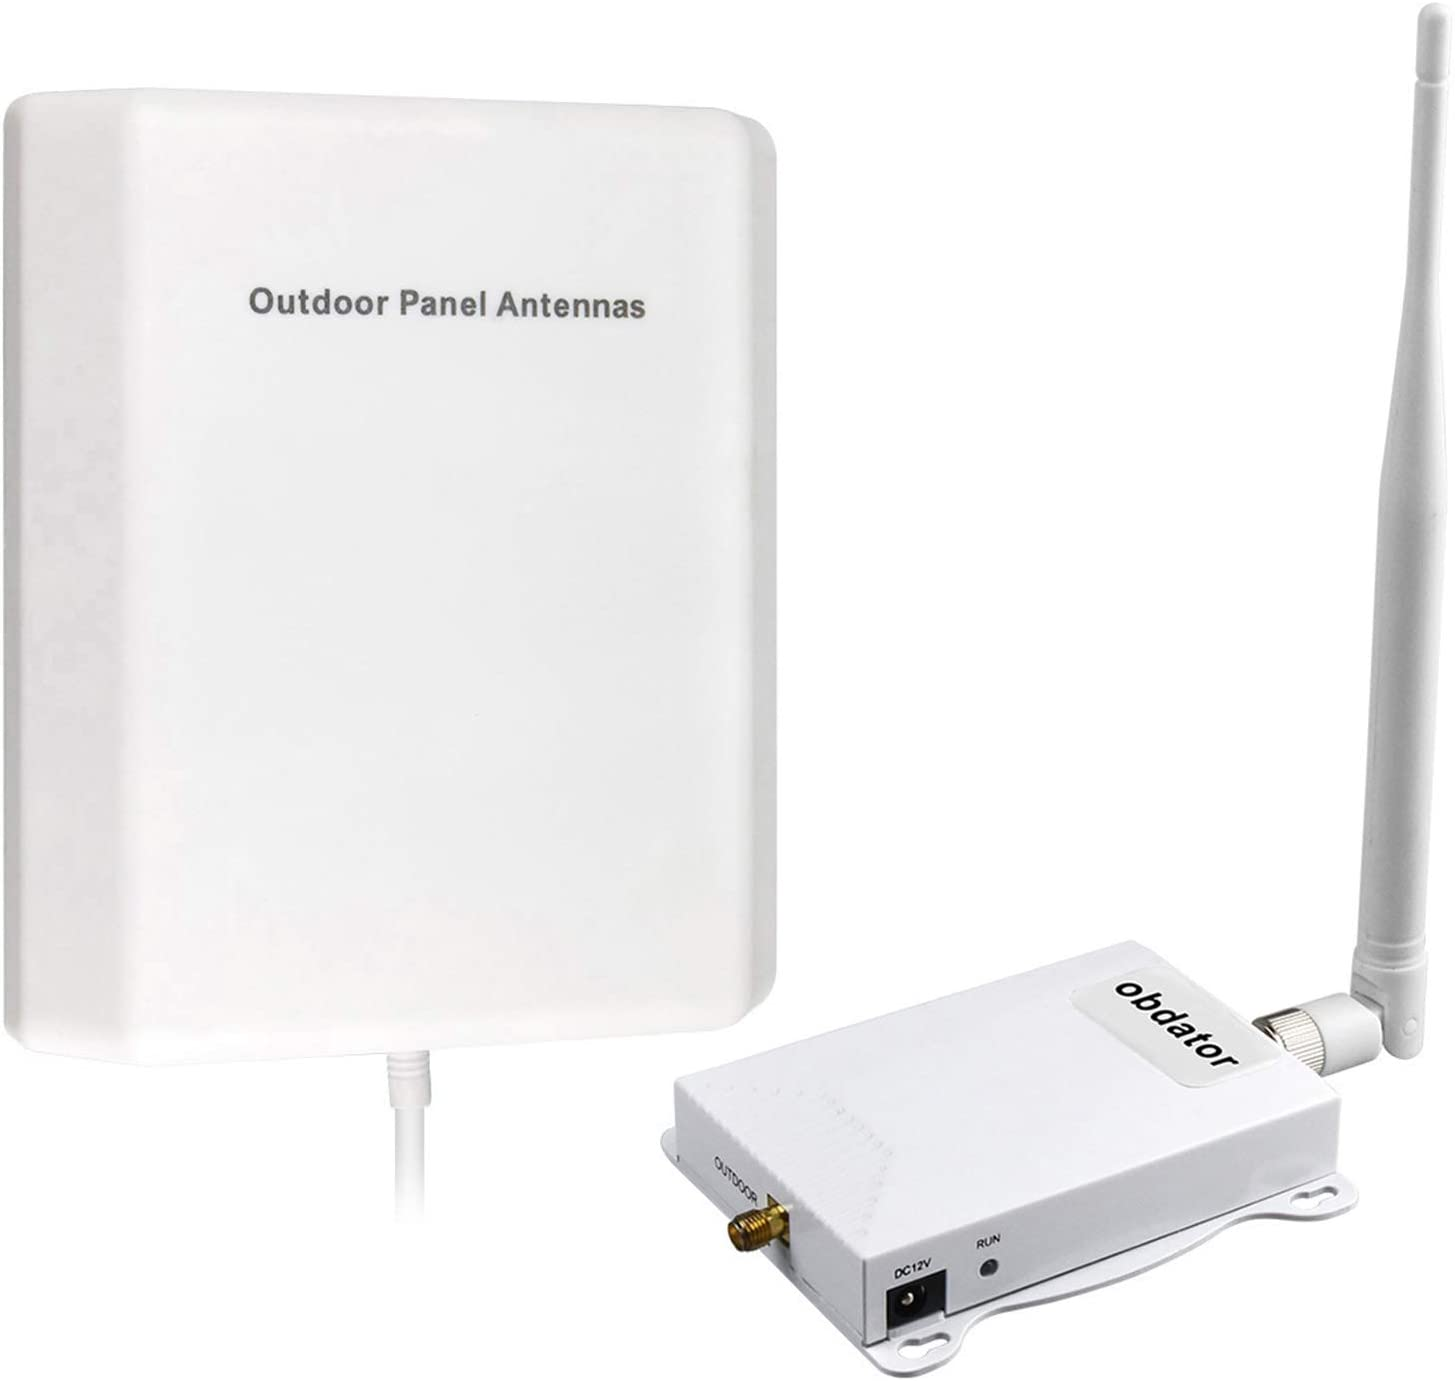 Verizon Signal Booster 4G LTE Cell Phone Signal Booster FDD 700Mhz US Cellular Signal Booster Verizon obdator Band 13 High Gain Mobile Phone Signal Booster for Home